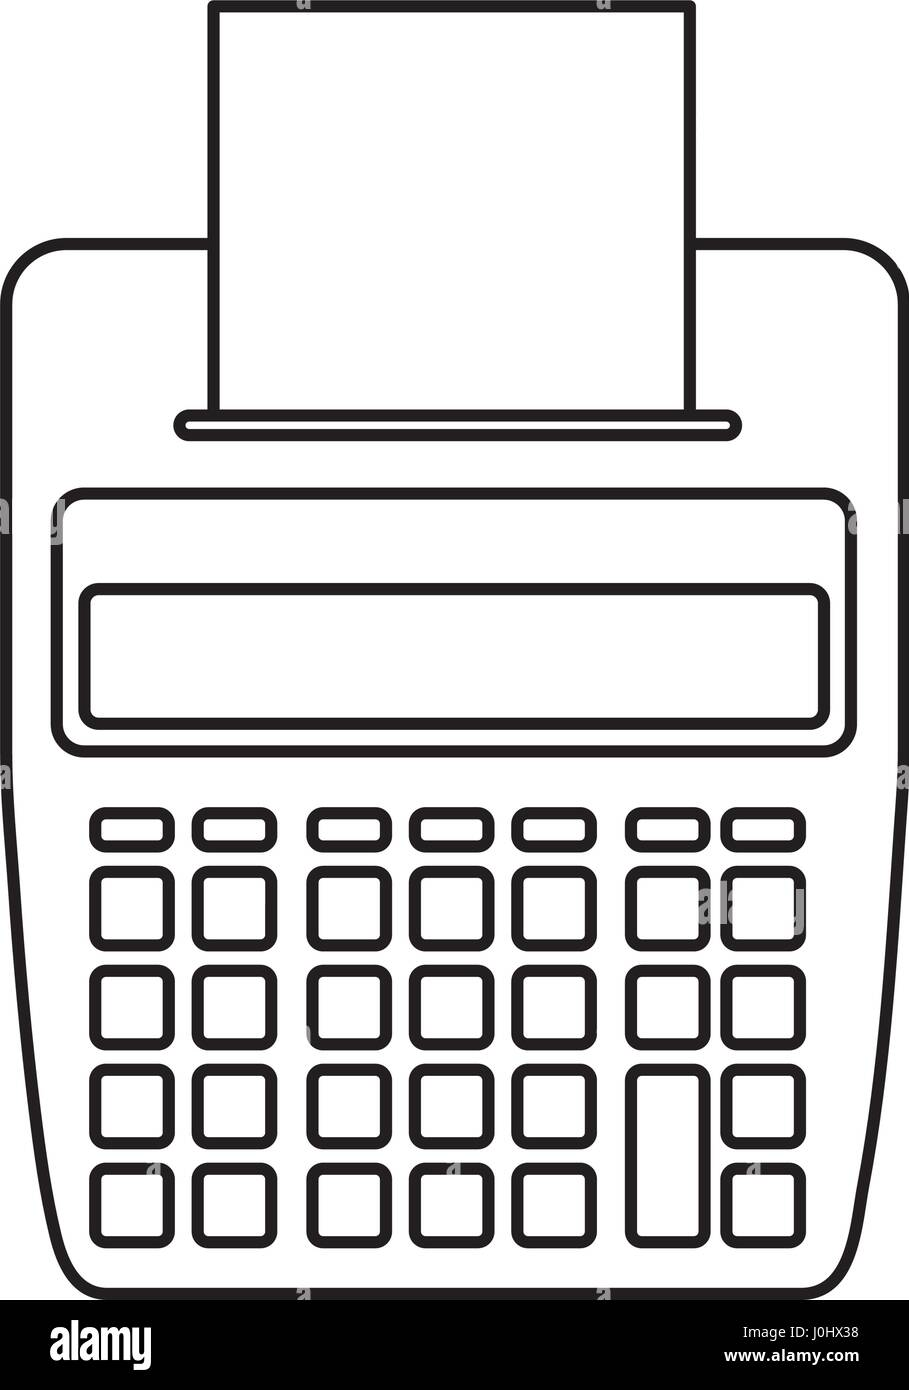 Calculator with paper printer stock vector art illustration calculator with paper printer ccuart Images